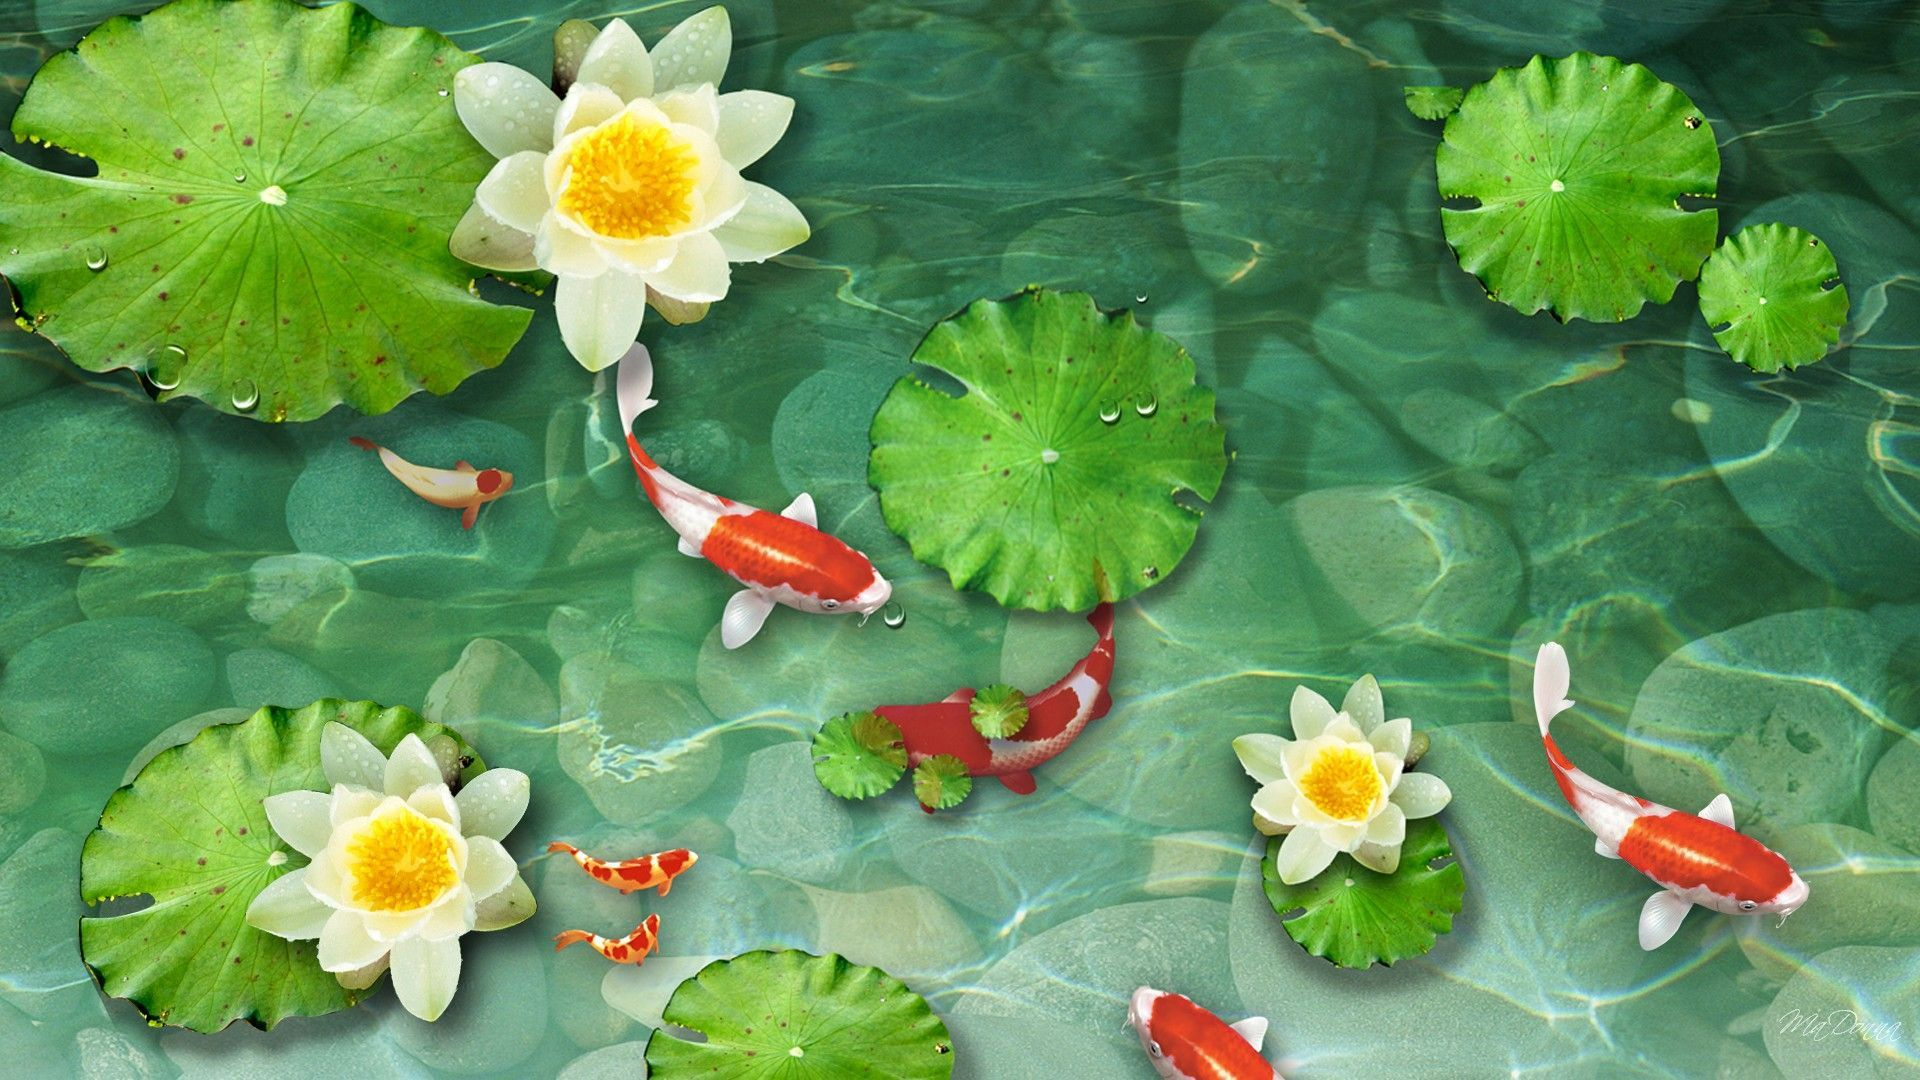 pictures of fish ponds